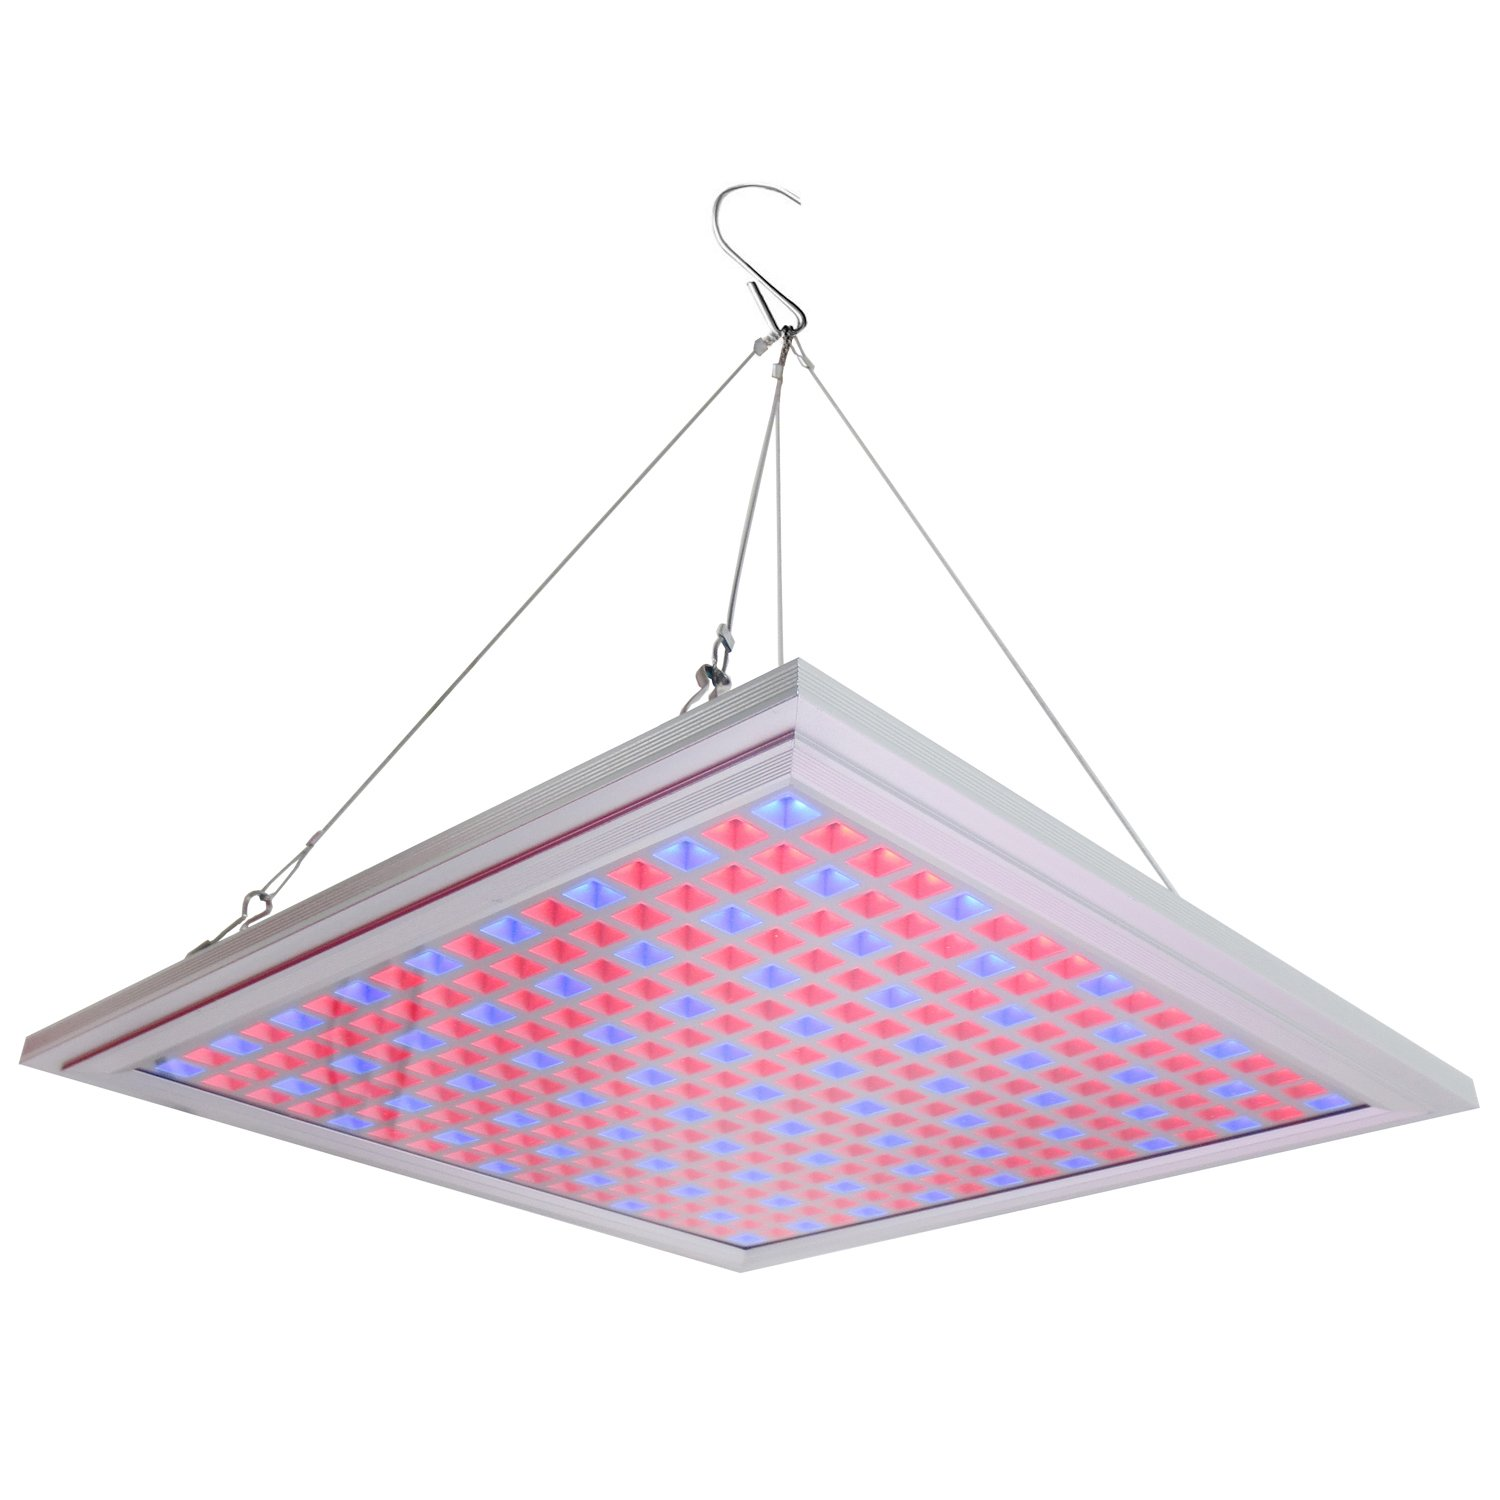 Osunby LED Grow Light, 150W Dimmable Growing Lamp 289 LEDs with Red Blue Spectrum for Hydroponic Indoor Plants Seedling, Vegetative and Flowering by Osunby